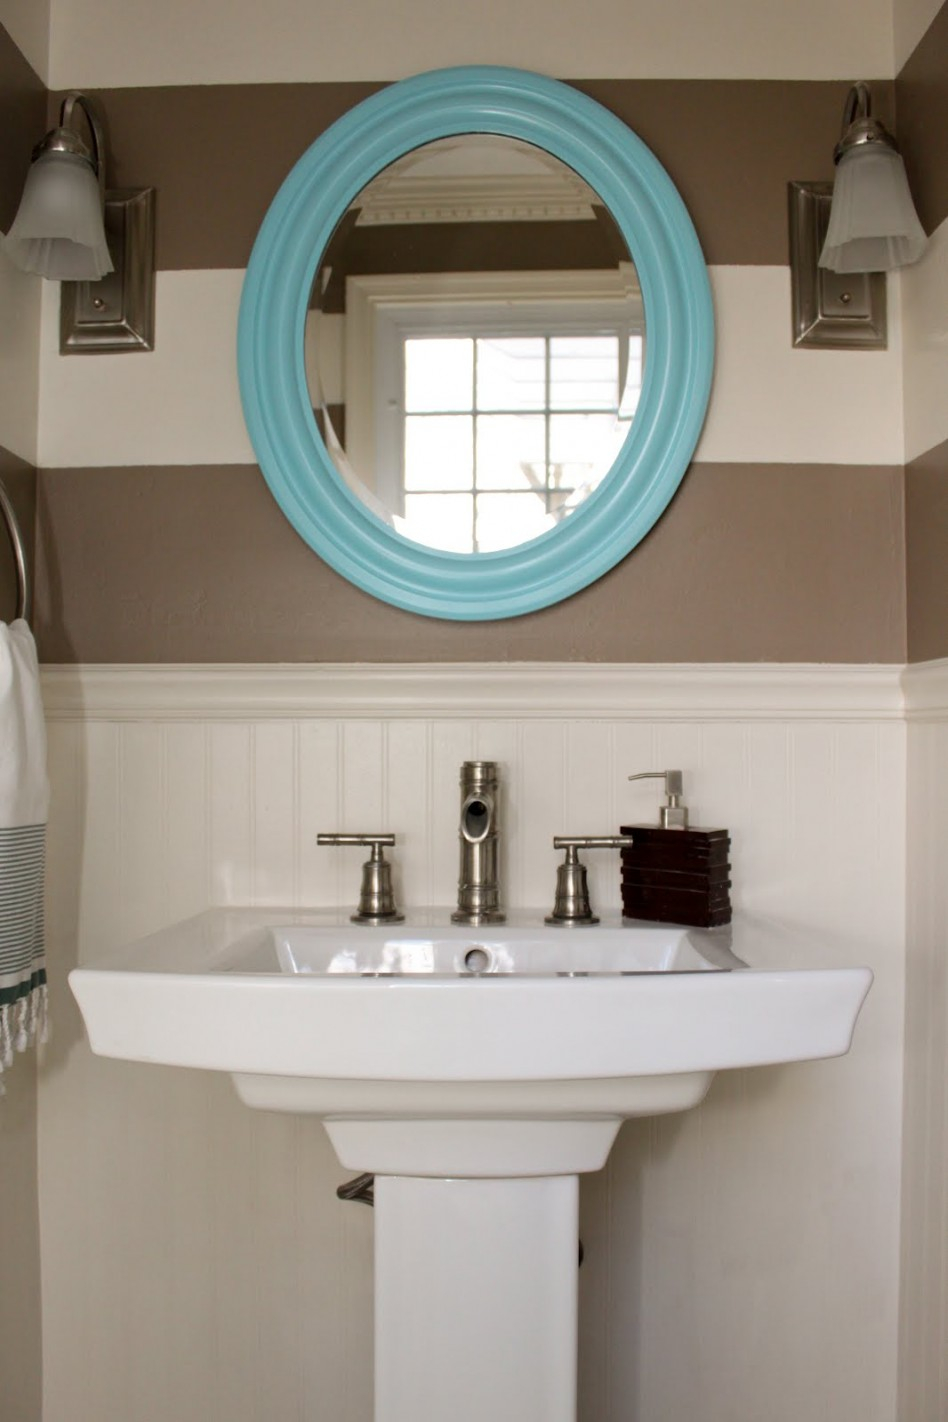 Glamorous Bathroom: Unique Color Combination Between Blue Oval Window Frame with Oval Room Blue Bathroom